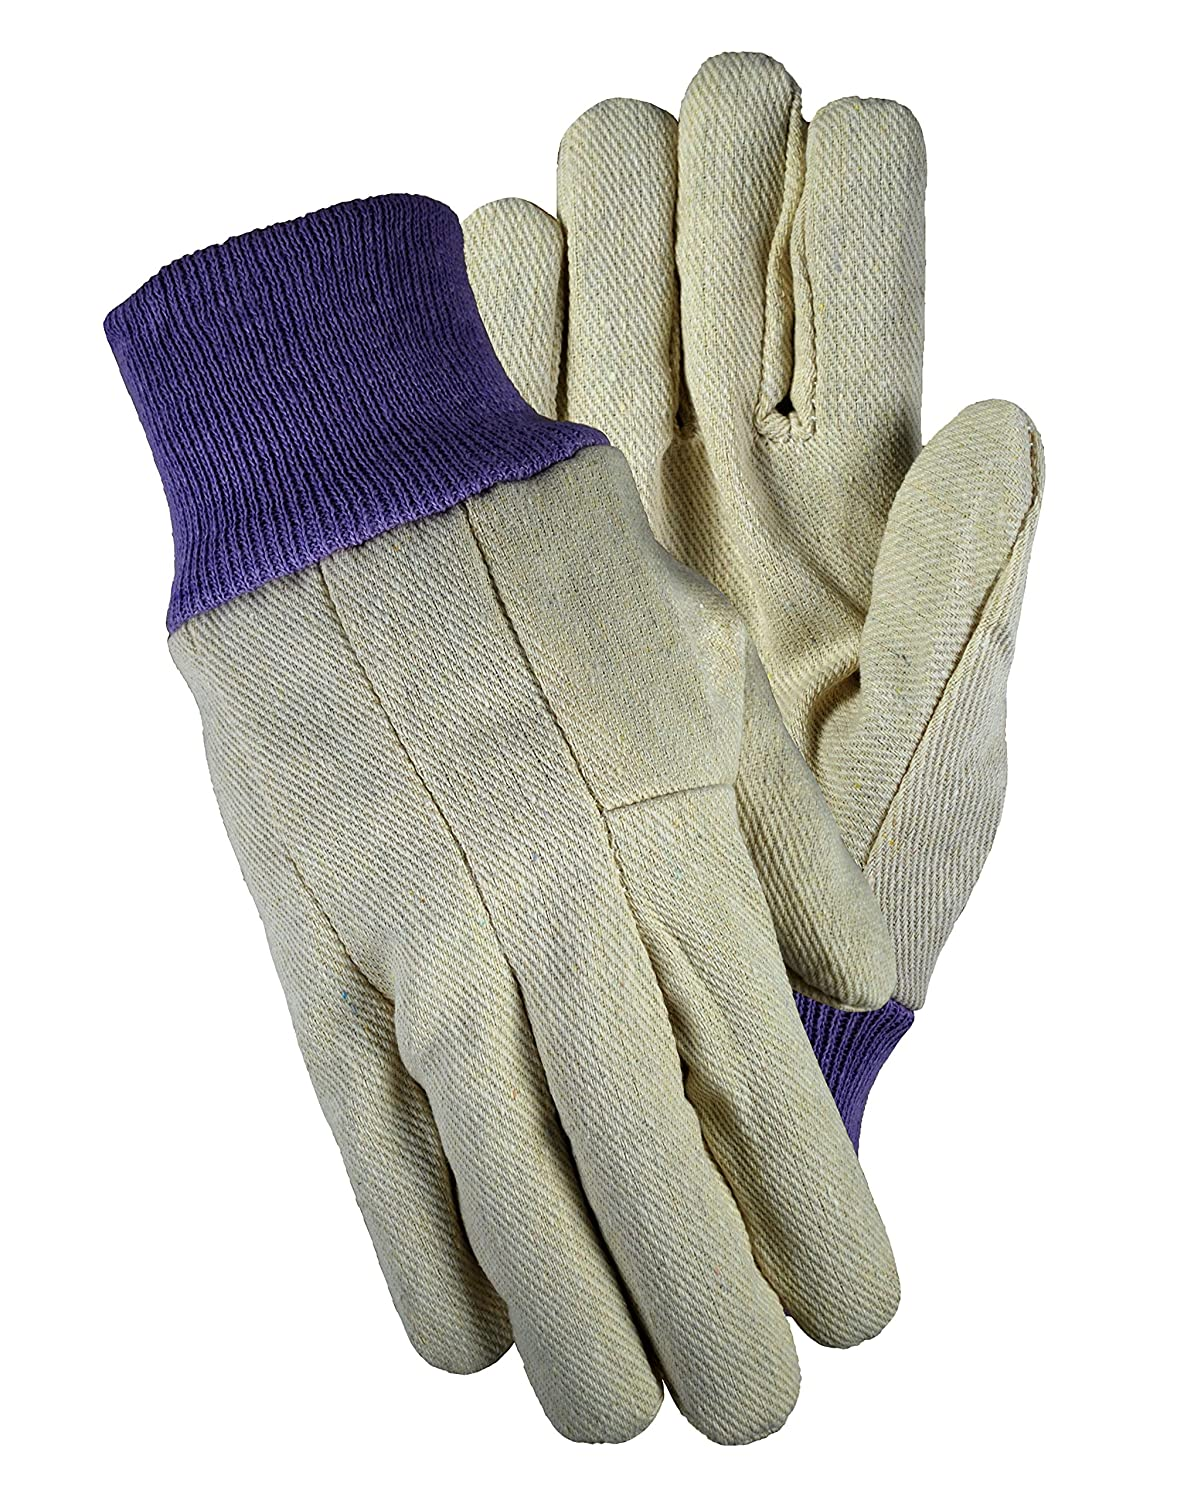 Gold MAGID GLOVE /& SAFETY 565KWTS Mens Chore Glove Small